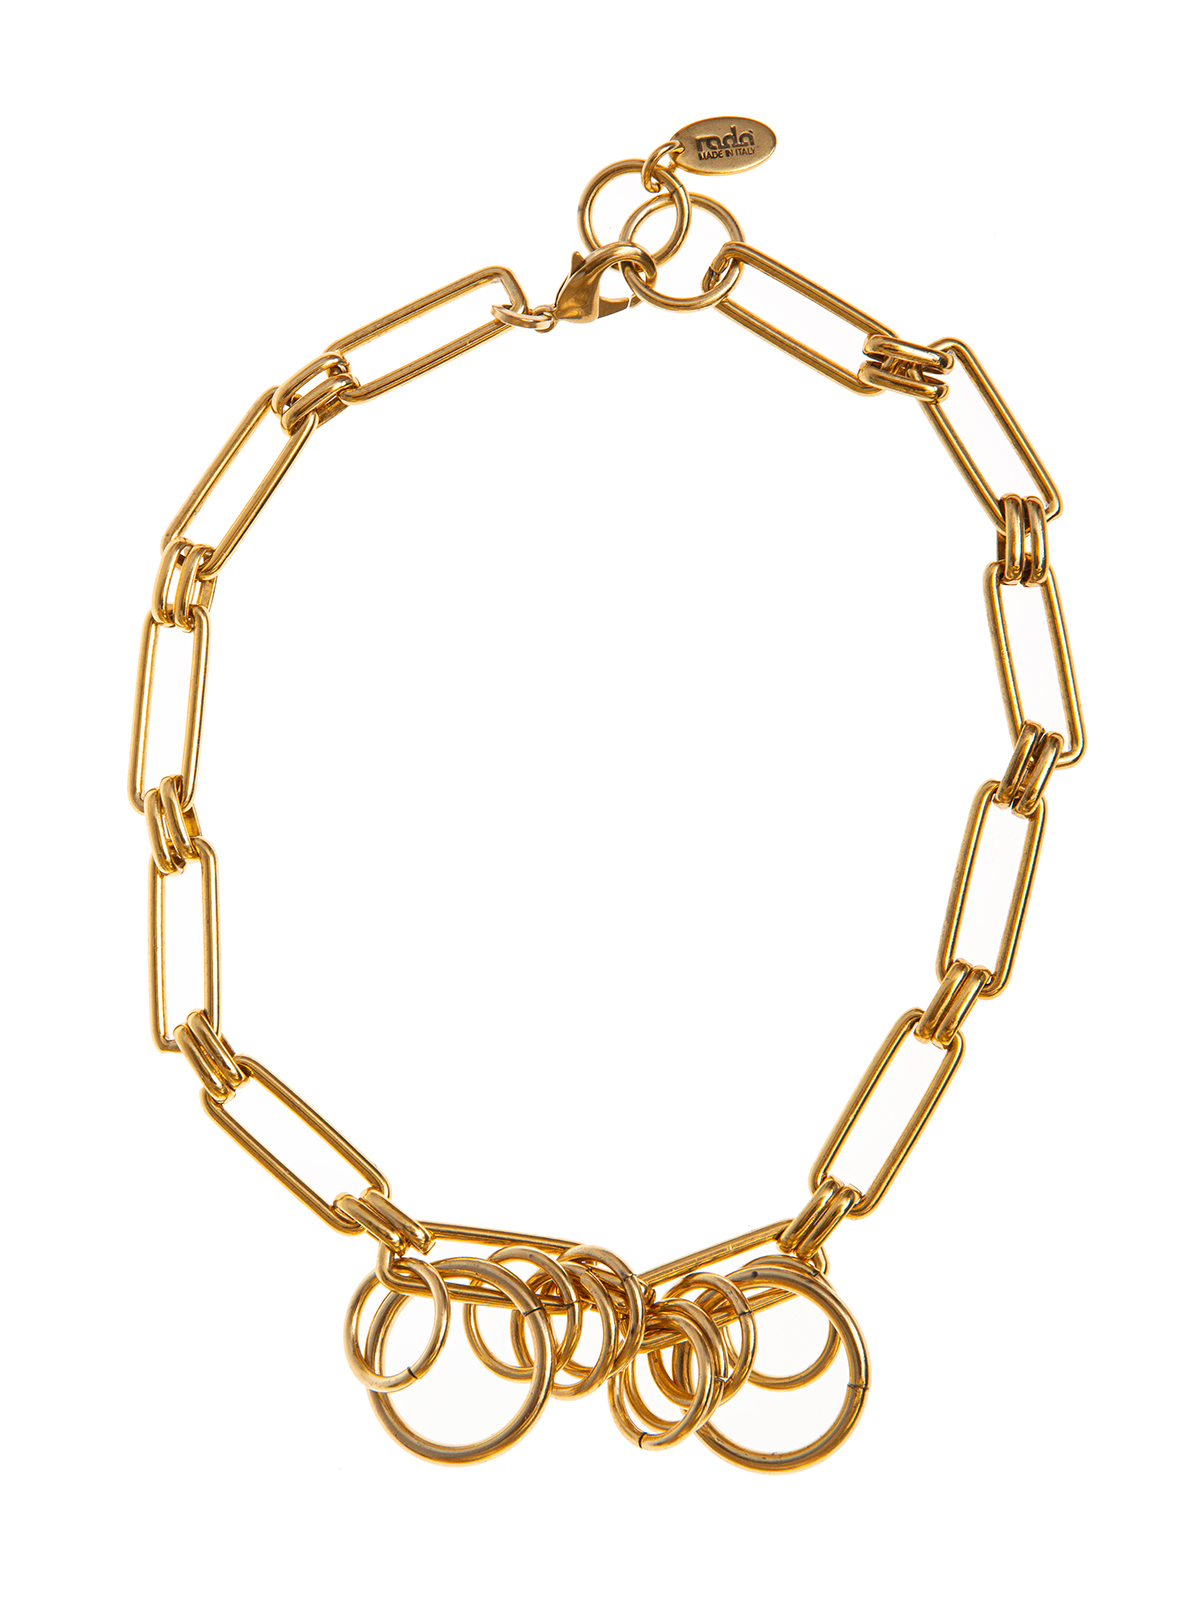 Rectangular chain necklace embellished with rings